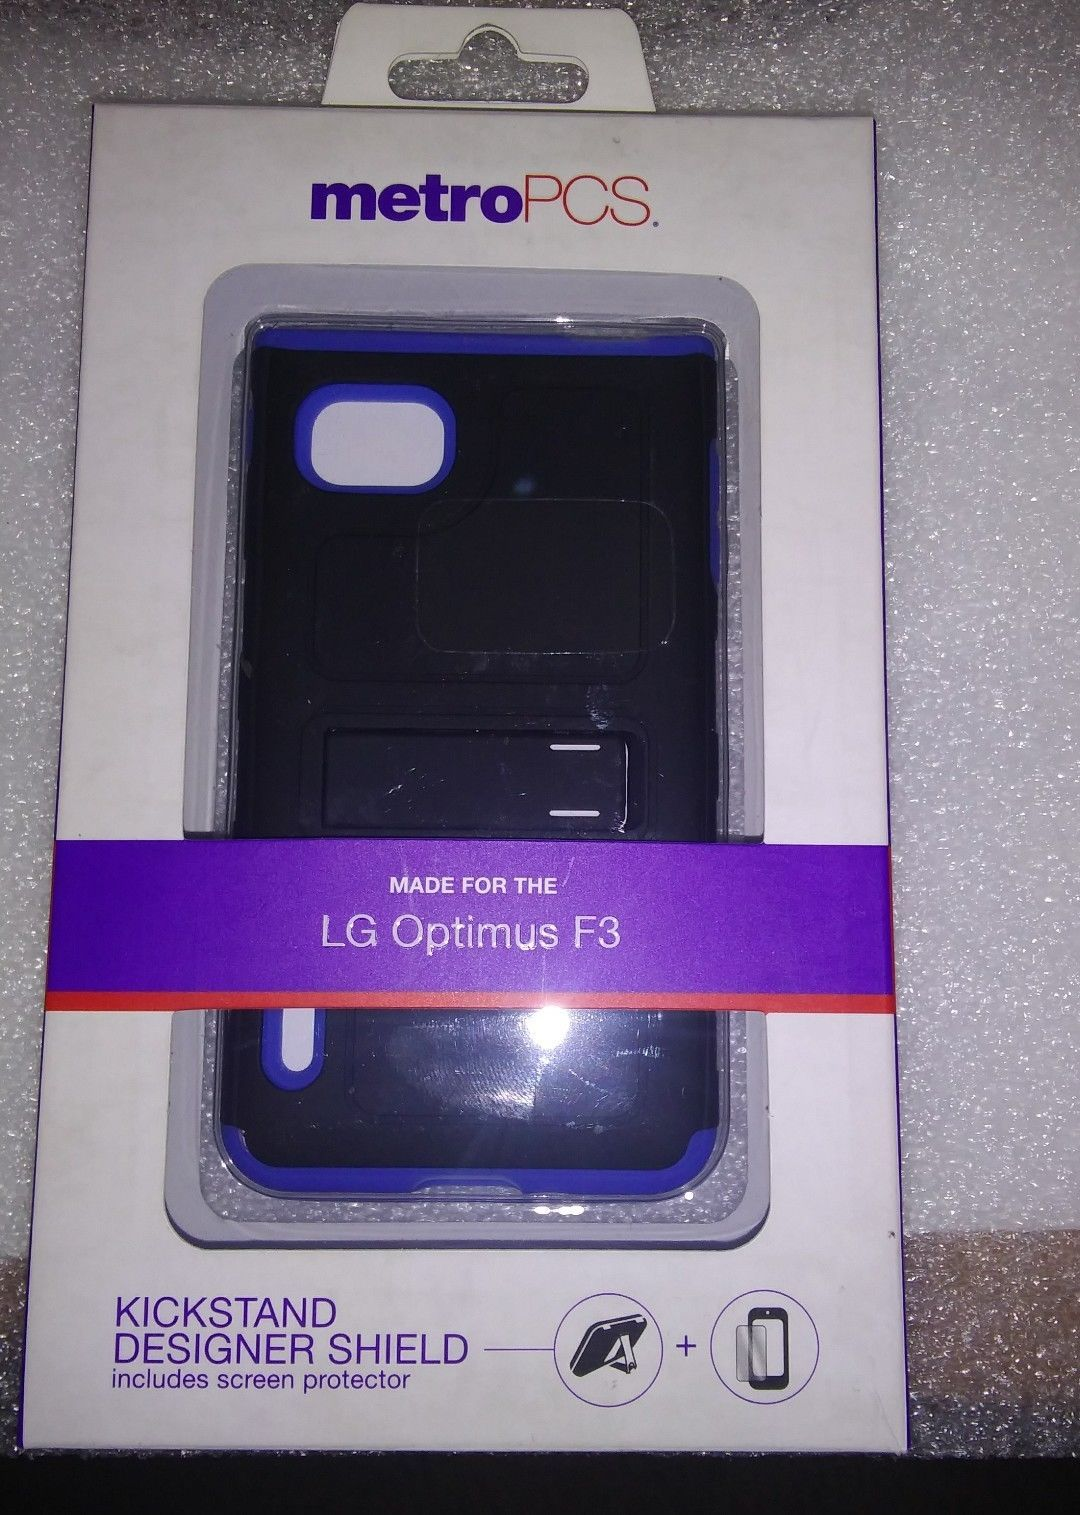 Primary image for LG Optimus F3 Metro PCS - KICKSTAND Designer Shield w Screen Protector PRO1385